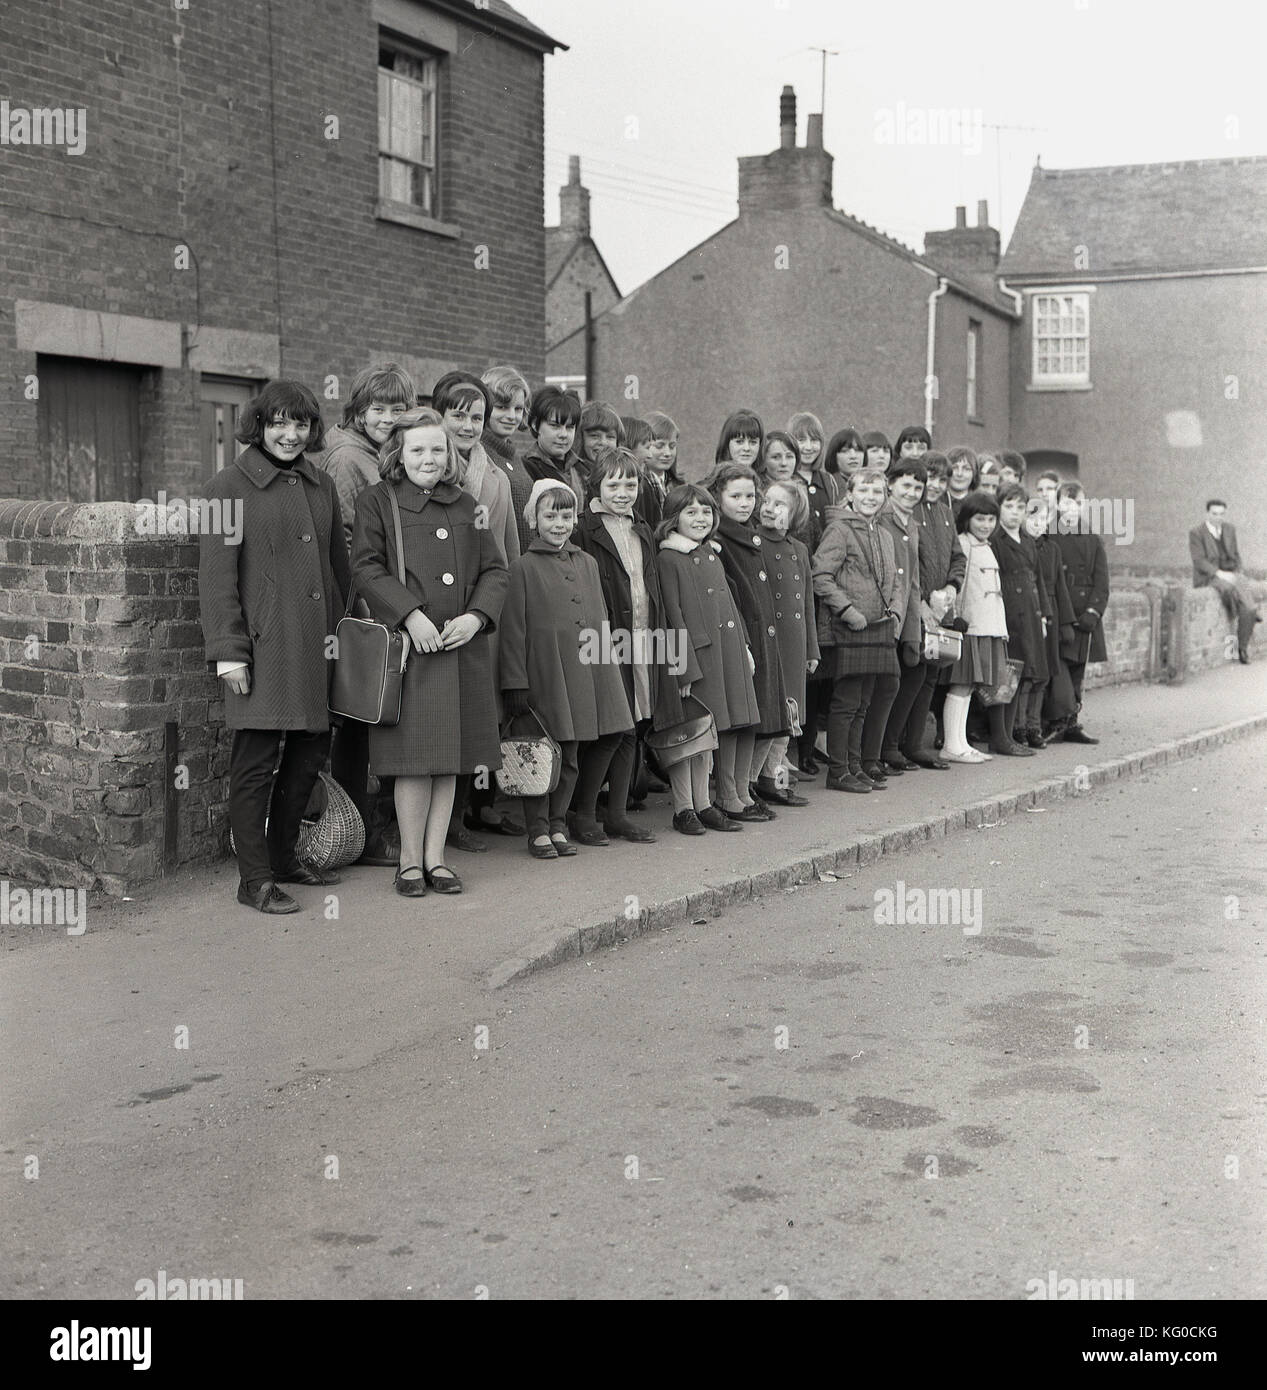 1950s, historical, post-ww2 Britain and a group of excited children of different ages wait stand together on a pavement Stock Photo